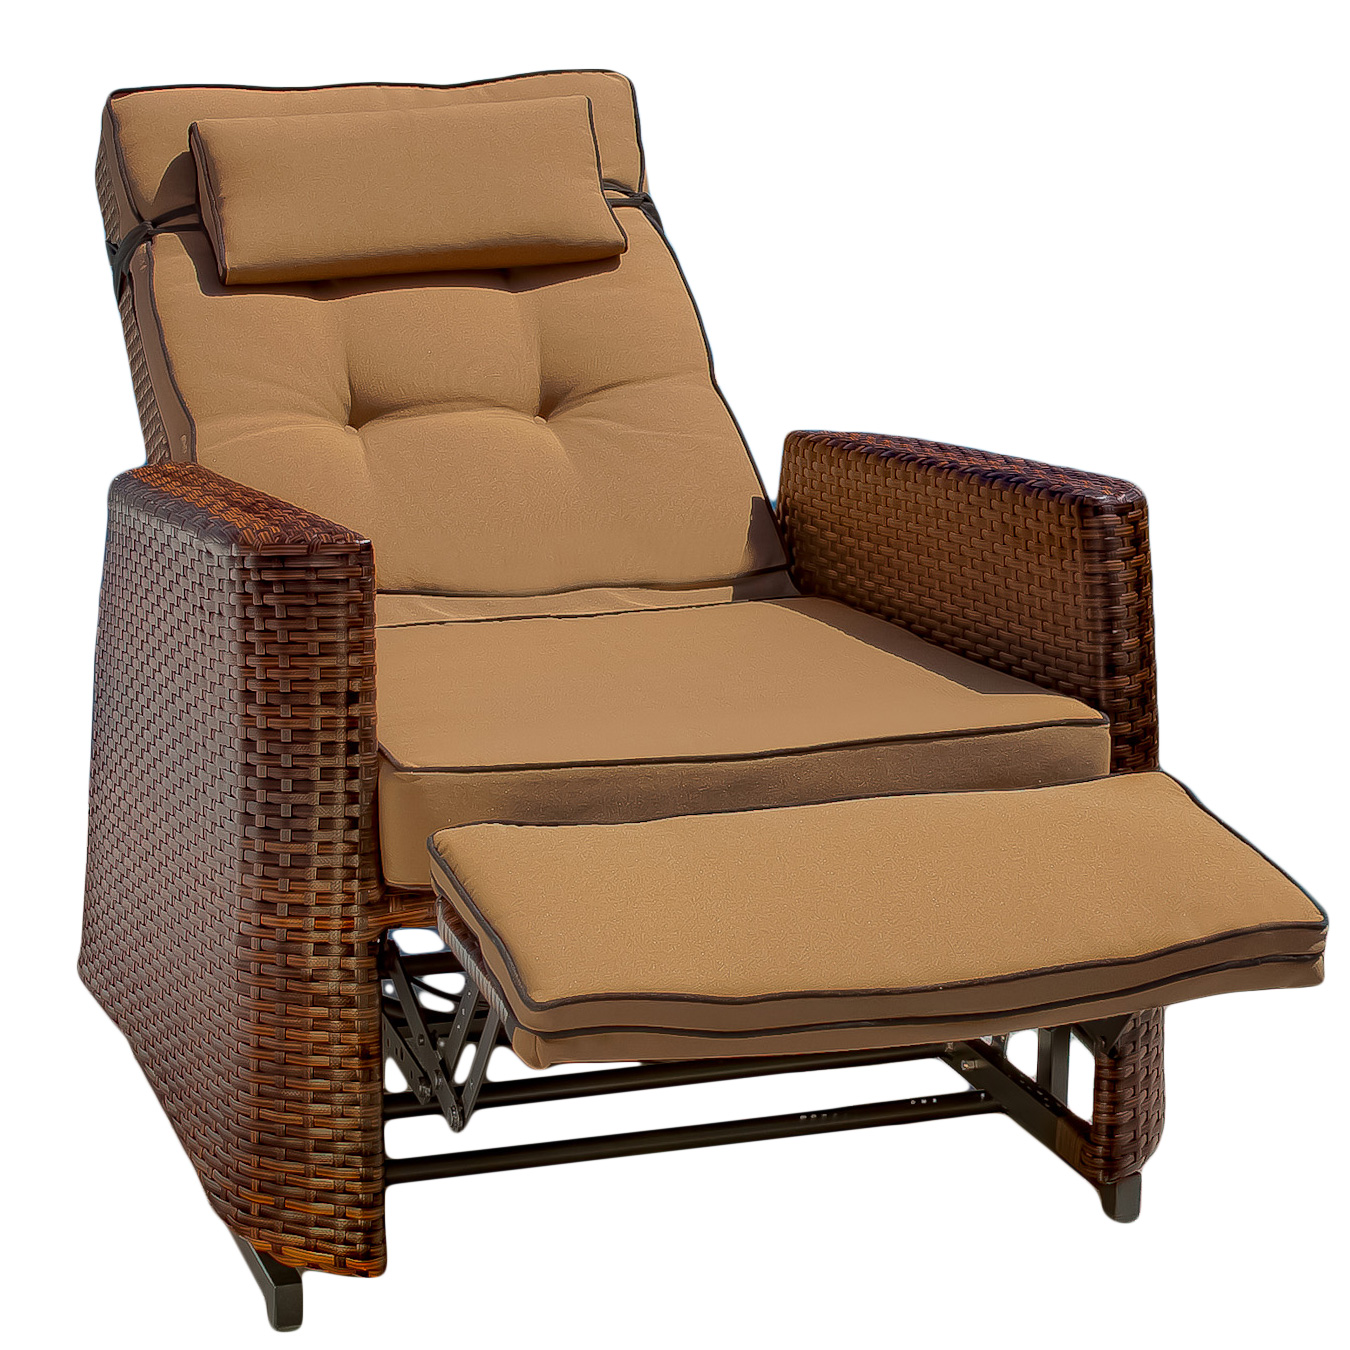 Brown Wicker Outdoor Recliner Rocking Chair with Cushions